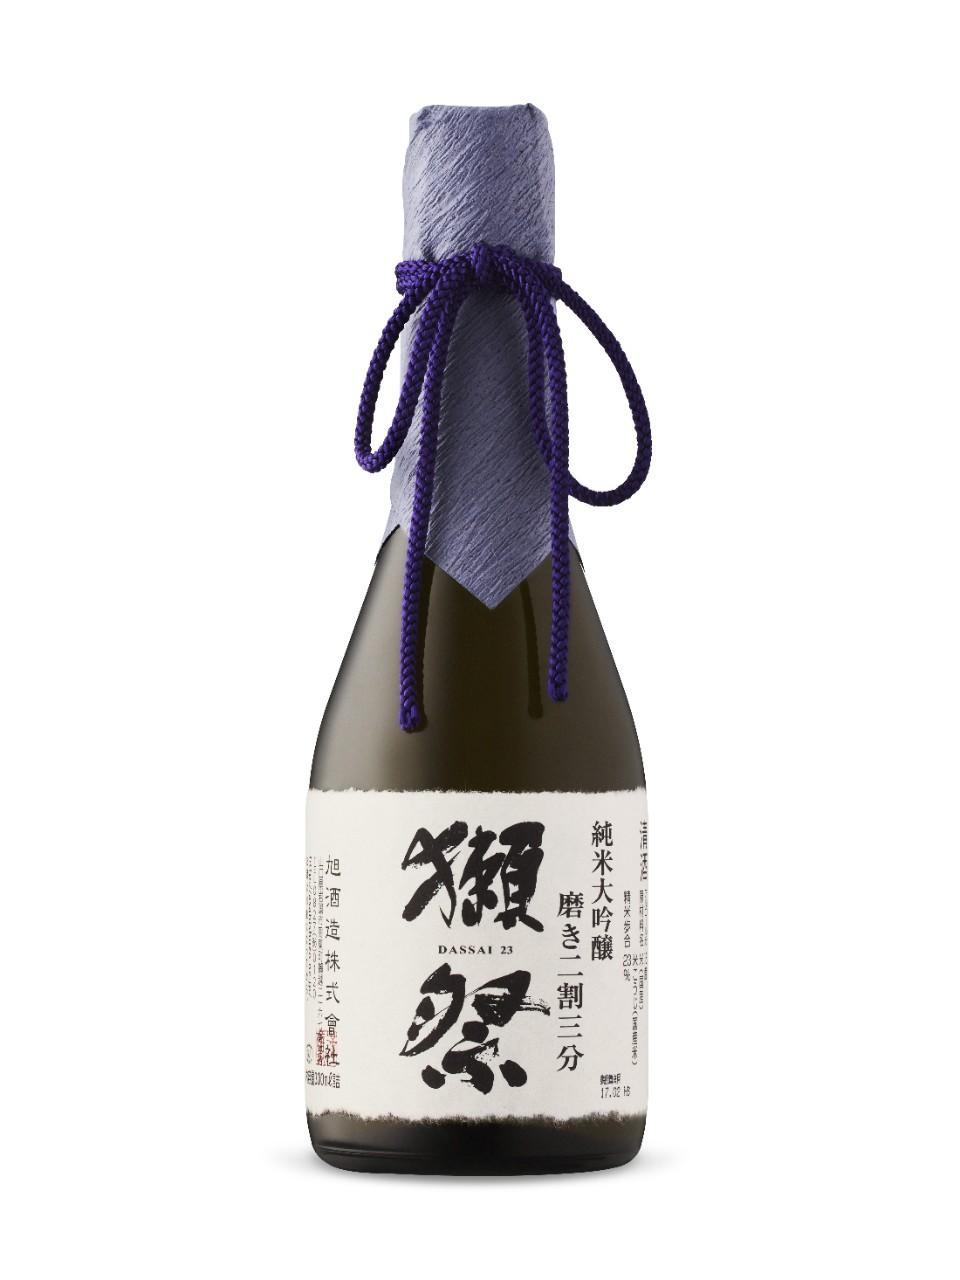 Image for Dassai 23 Junmai Daiginjo Sake from LCBO